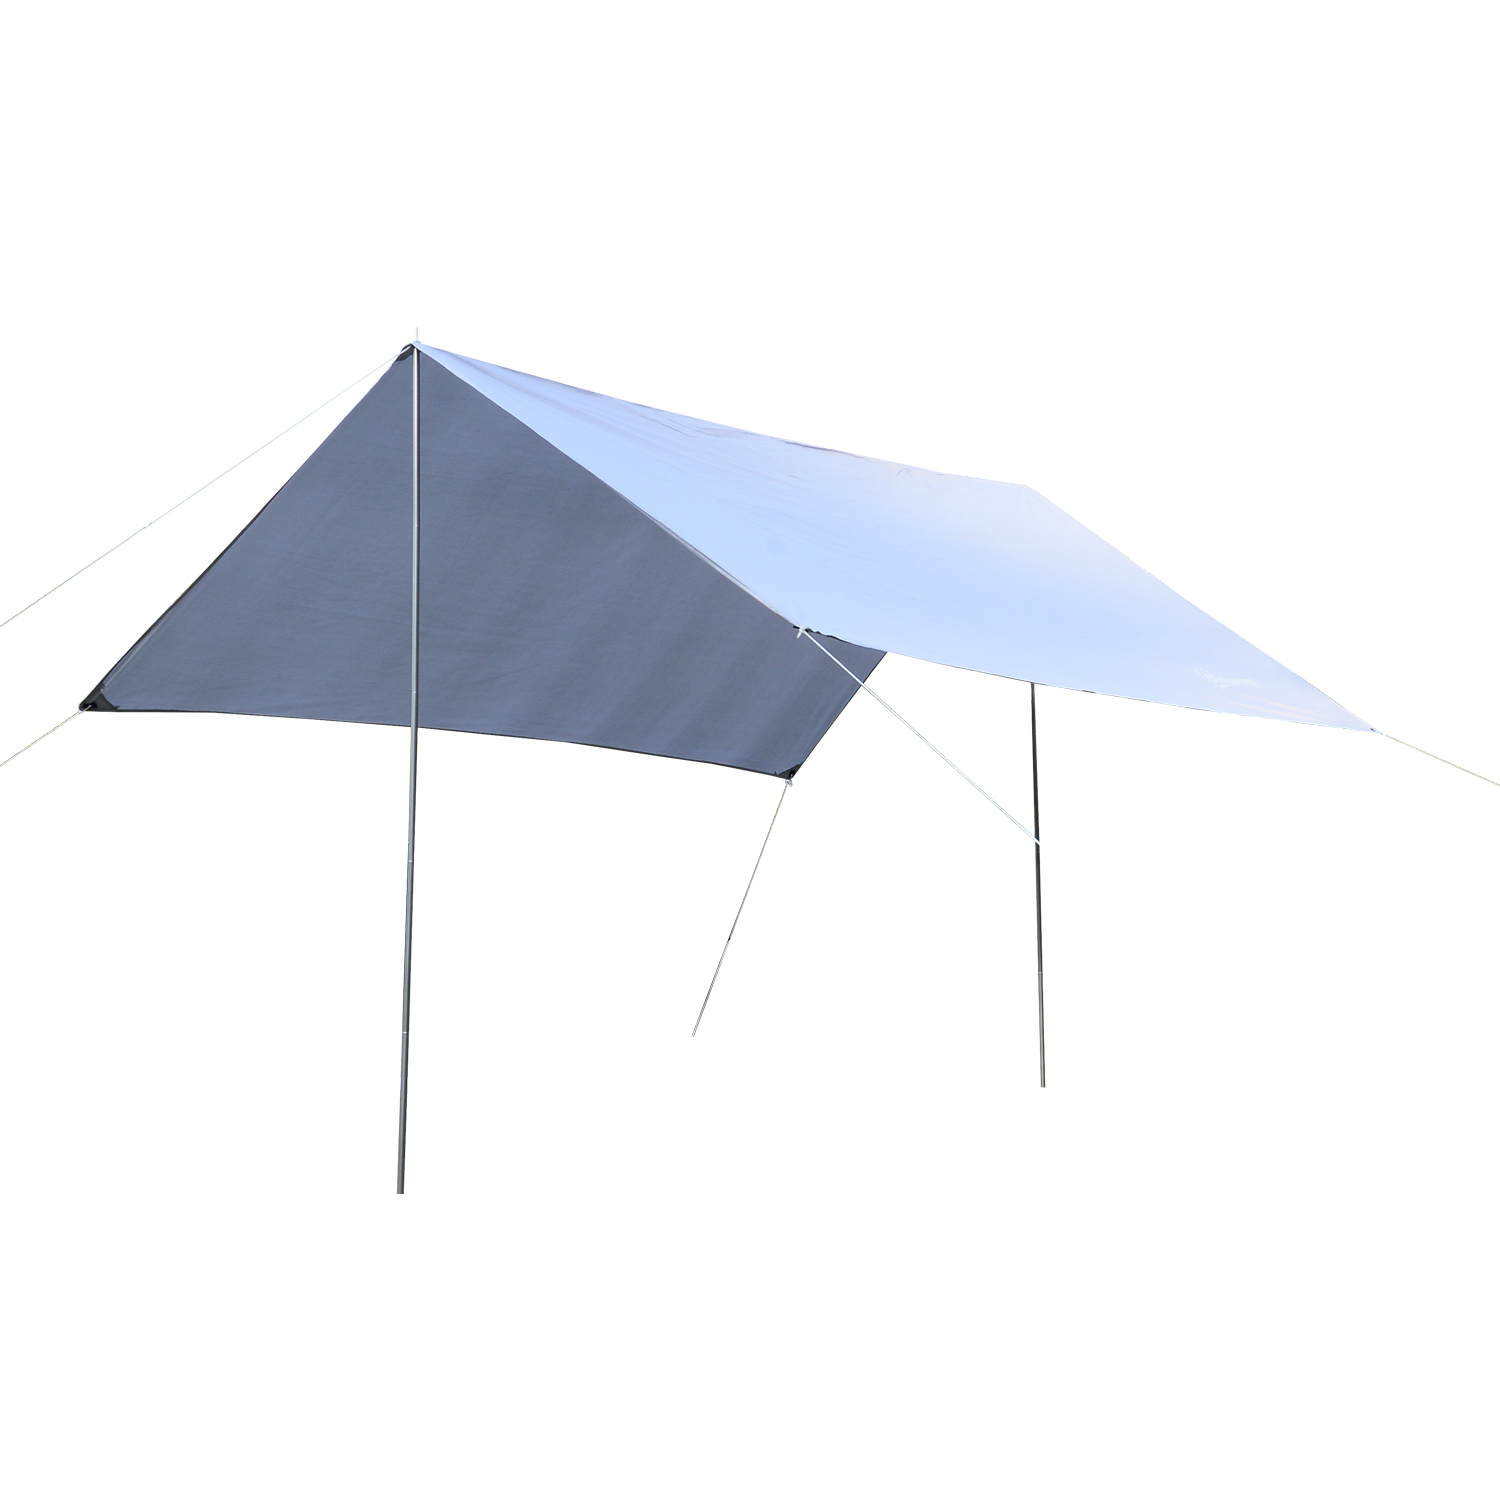 Image of £23.99 Outsunny Tent Shelter, 3x3 m-White / 3 x 3M Rain Fly Camping Tarp Water Resistant Awning Patio Sun shade Hiking Shelter Garden Beach UV Protection w/Backpack - White Sunshade Backpack Camp Travel Hike 840-185WT 5056029889954